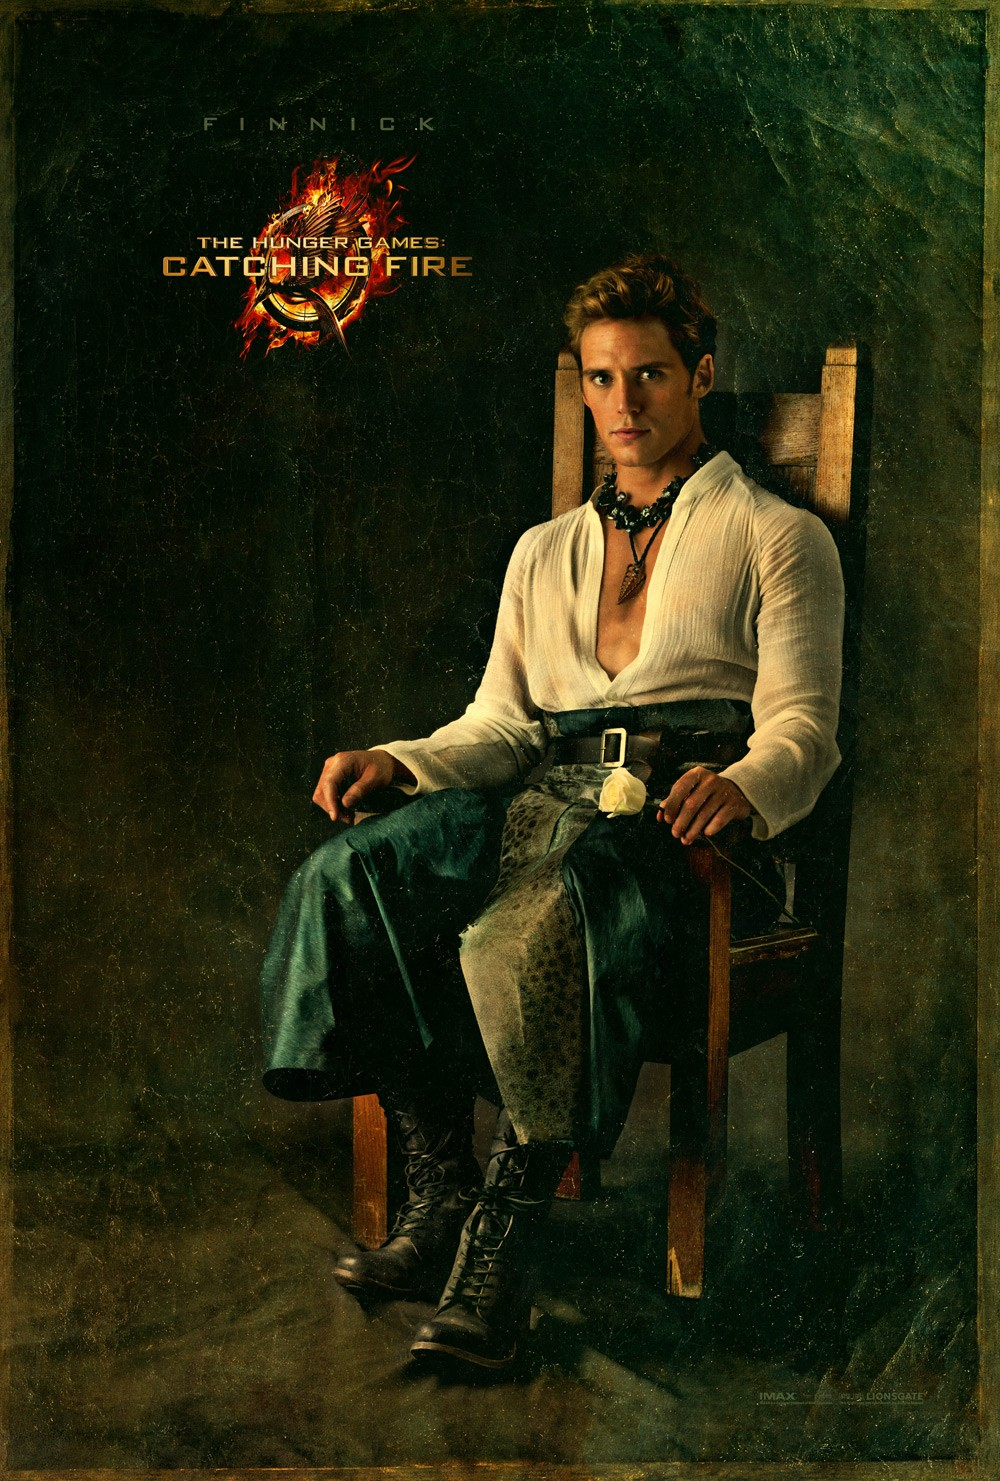 Catching Fire Finnick Character Poster Three More Catching Fire Posters Featuring Johanna, Finnick and Beetee